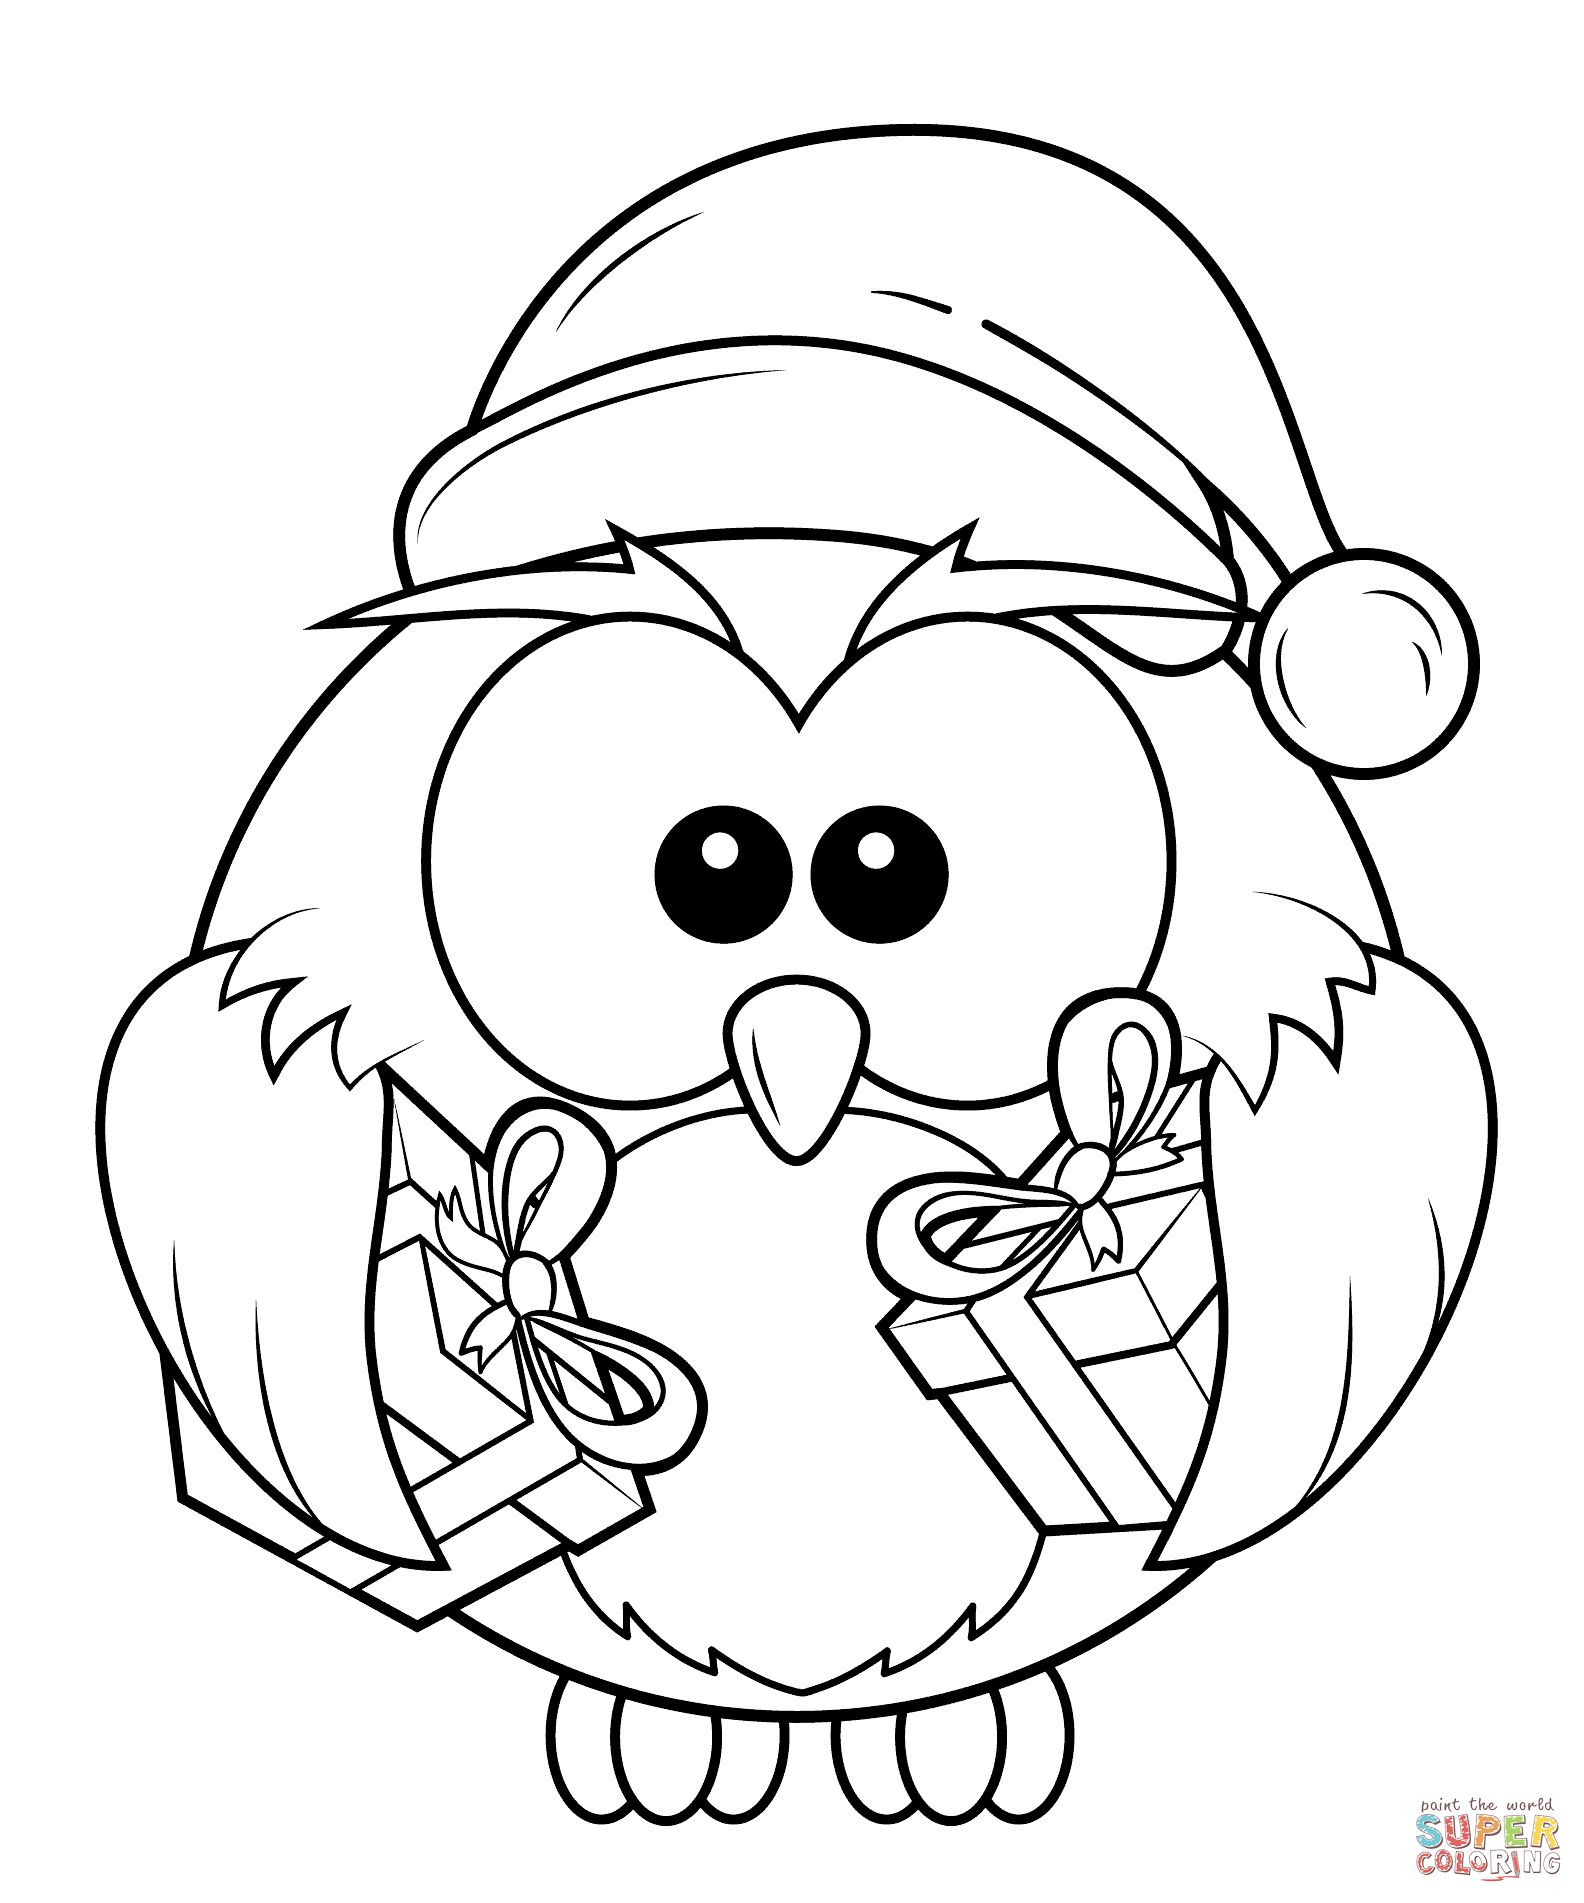 1584x1903 Christmas Owl With Gift Boxes Coloring Page At Coloring Pages